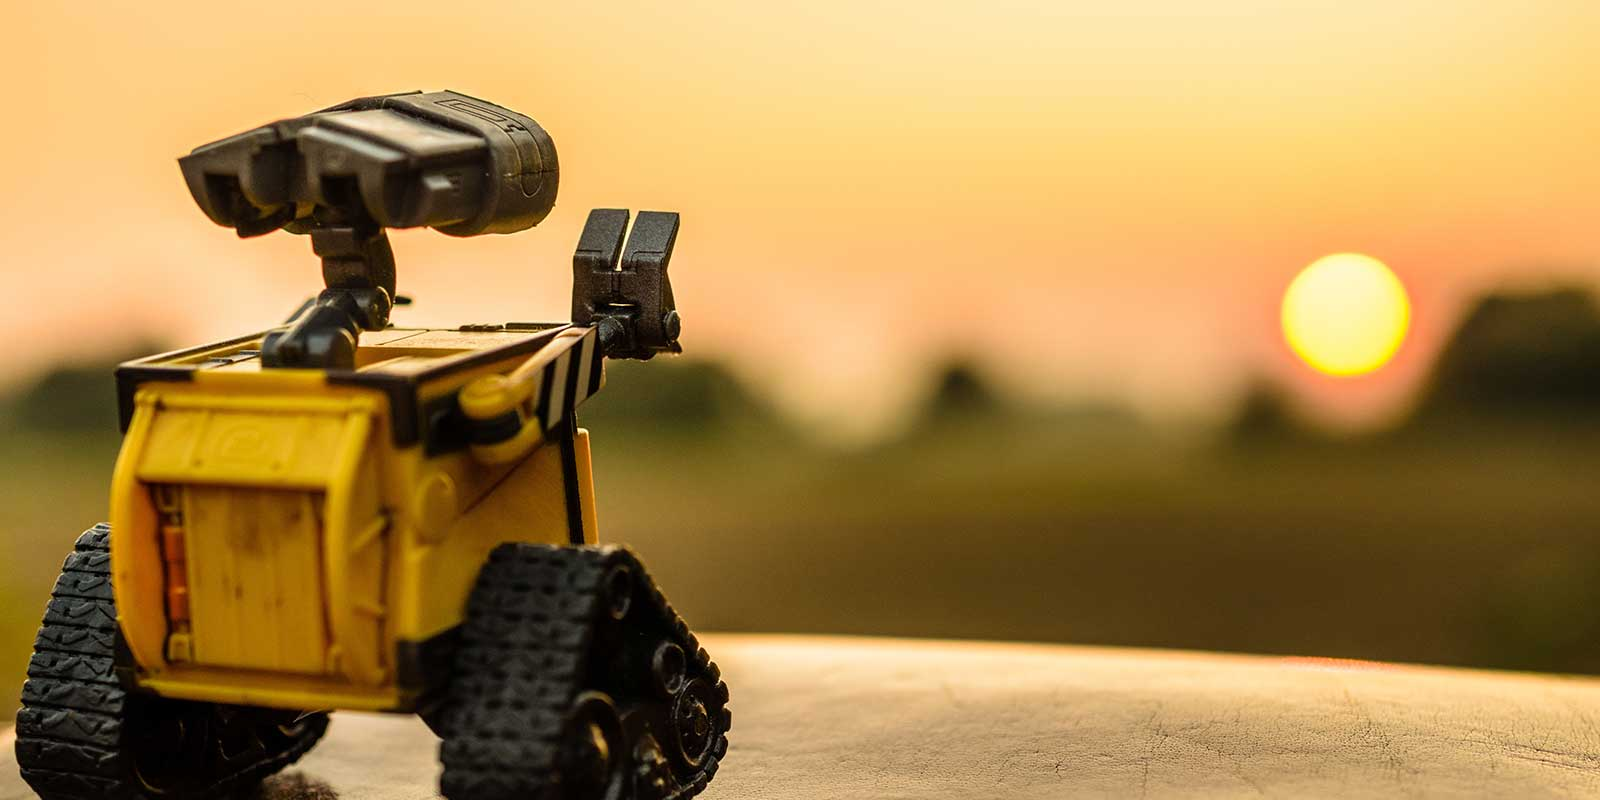 Tiny Robot Enjoying a Sunrise